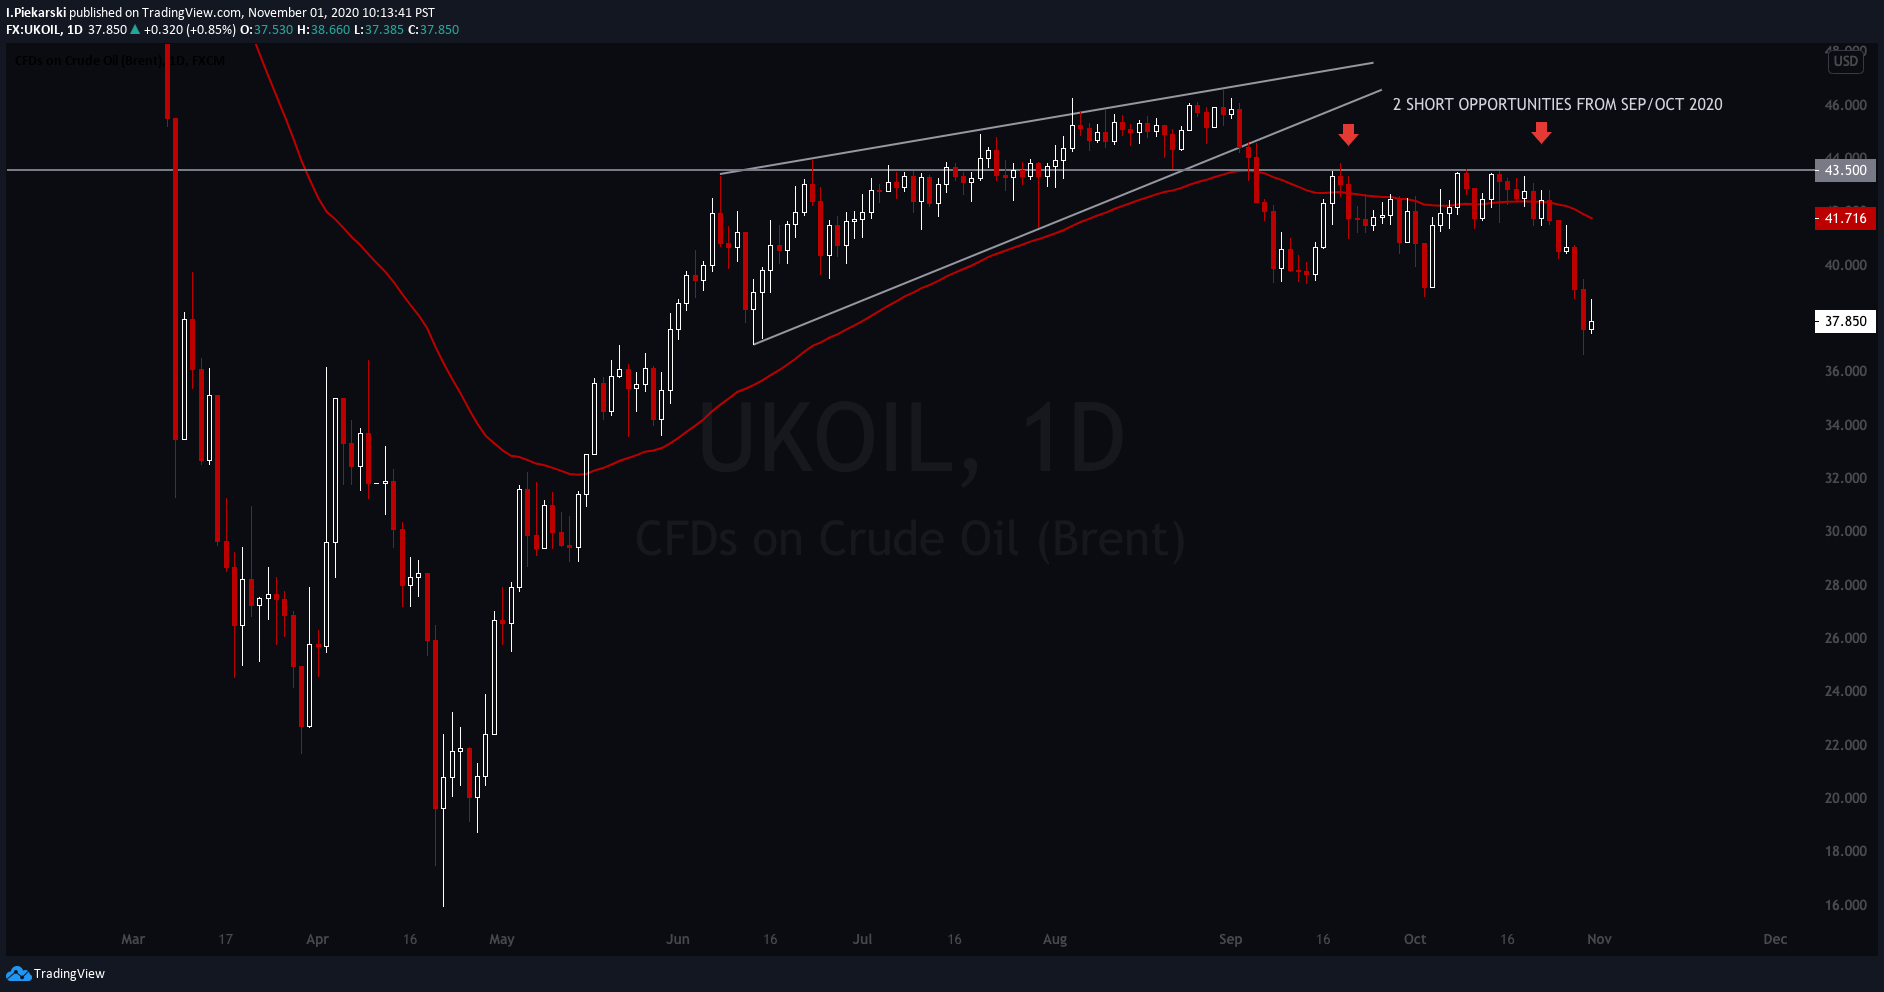 UKOIL Daily Chart from September / October 2020 with two short opportunities.